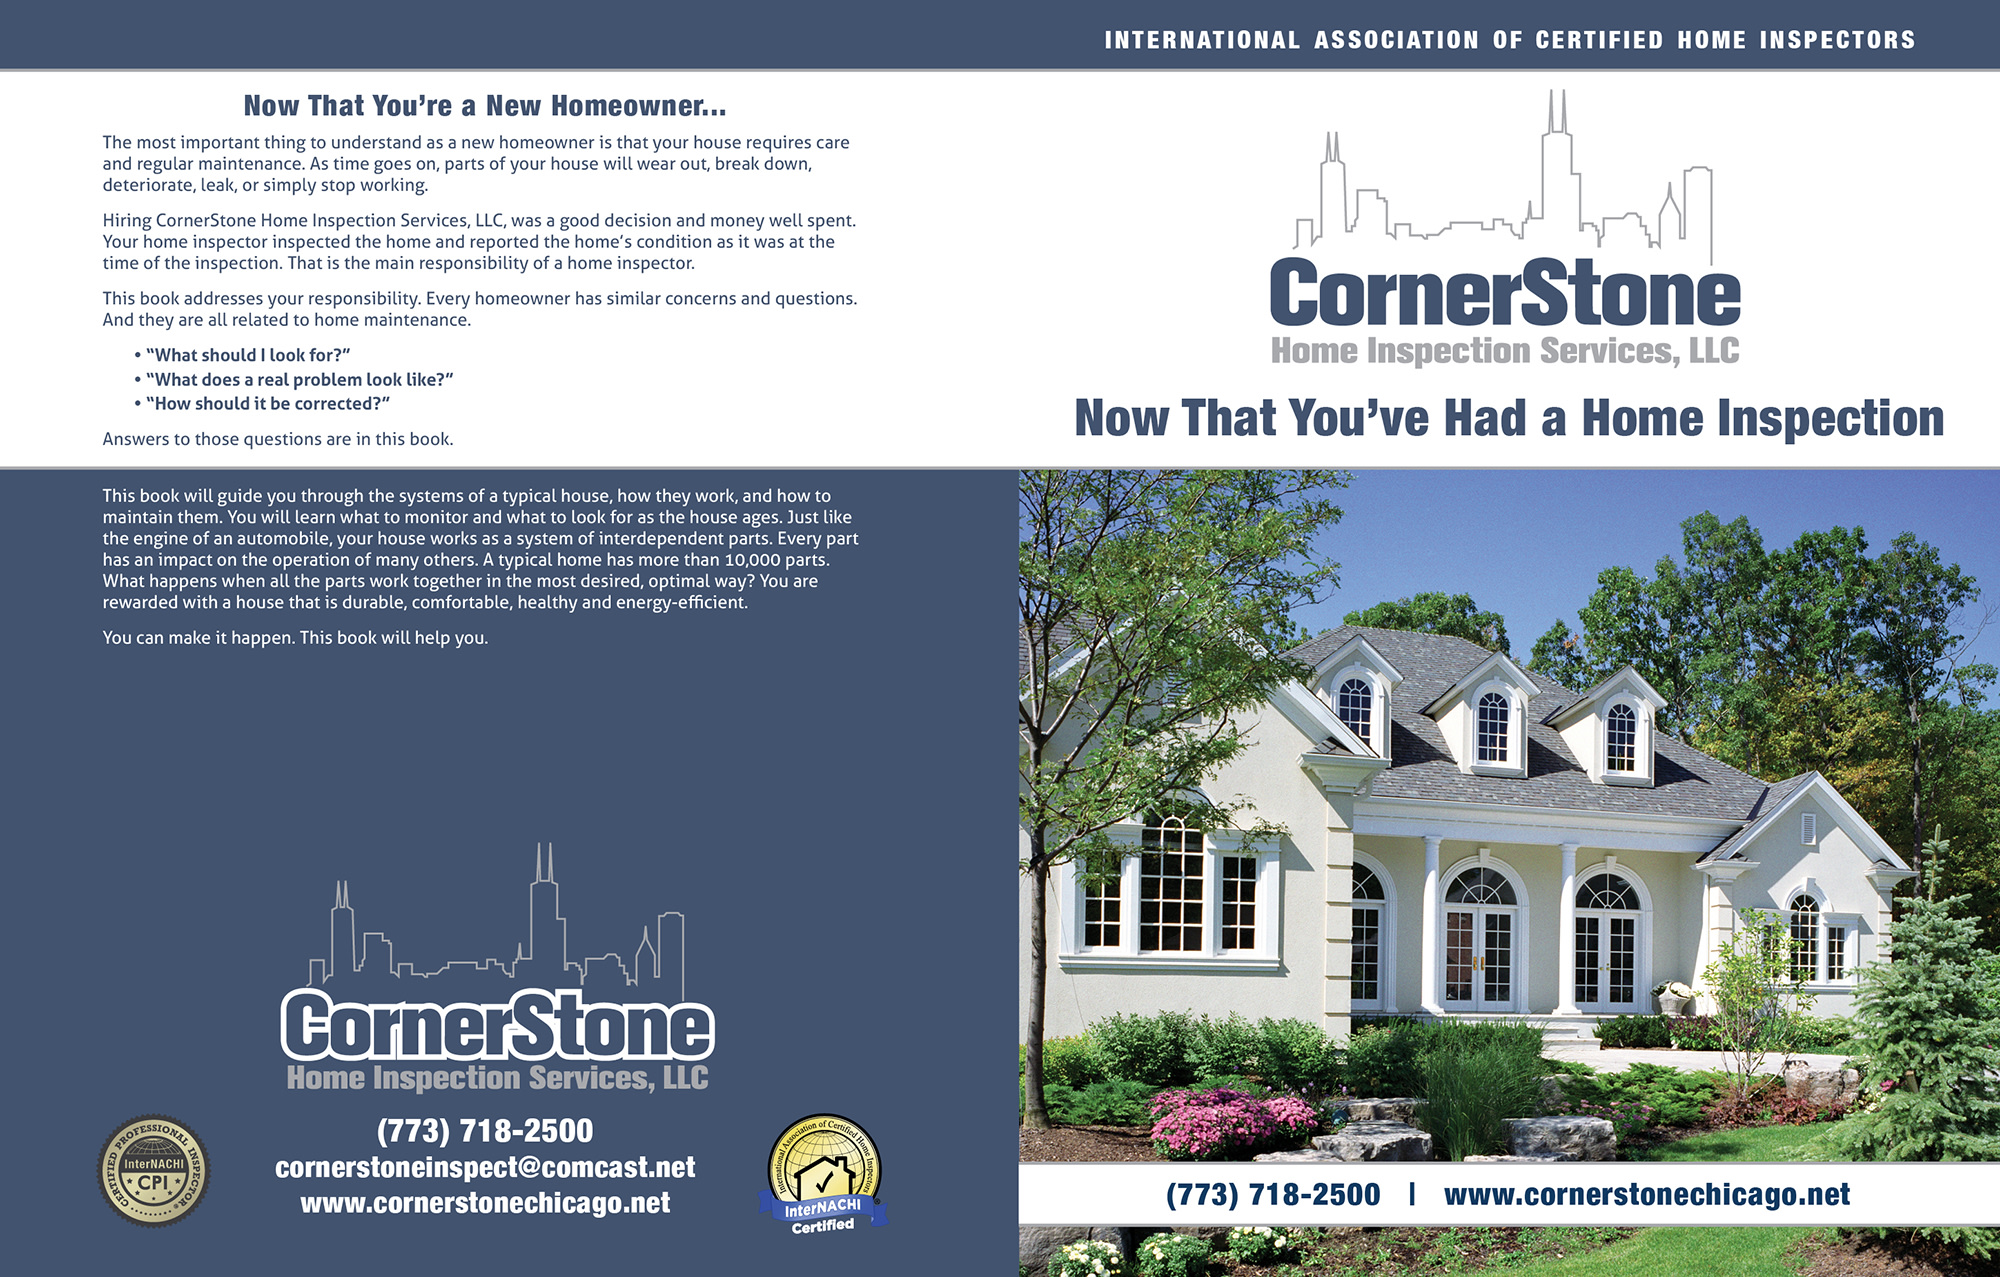 Custom Home Maintenance Book for Cornerstone Home Inspection Services.